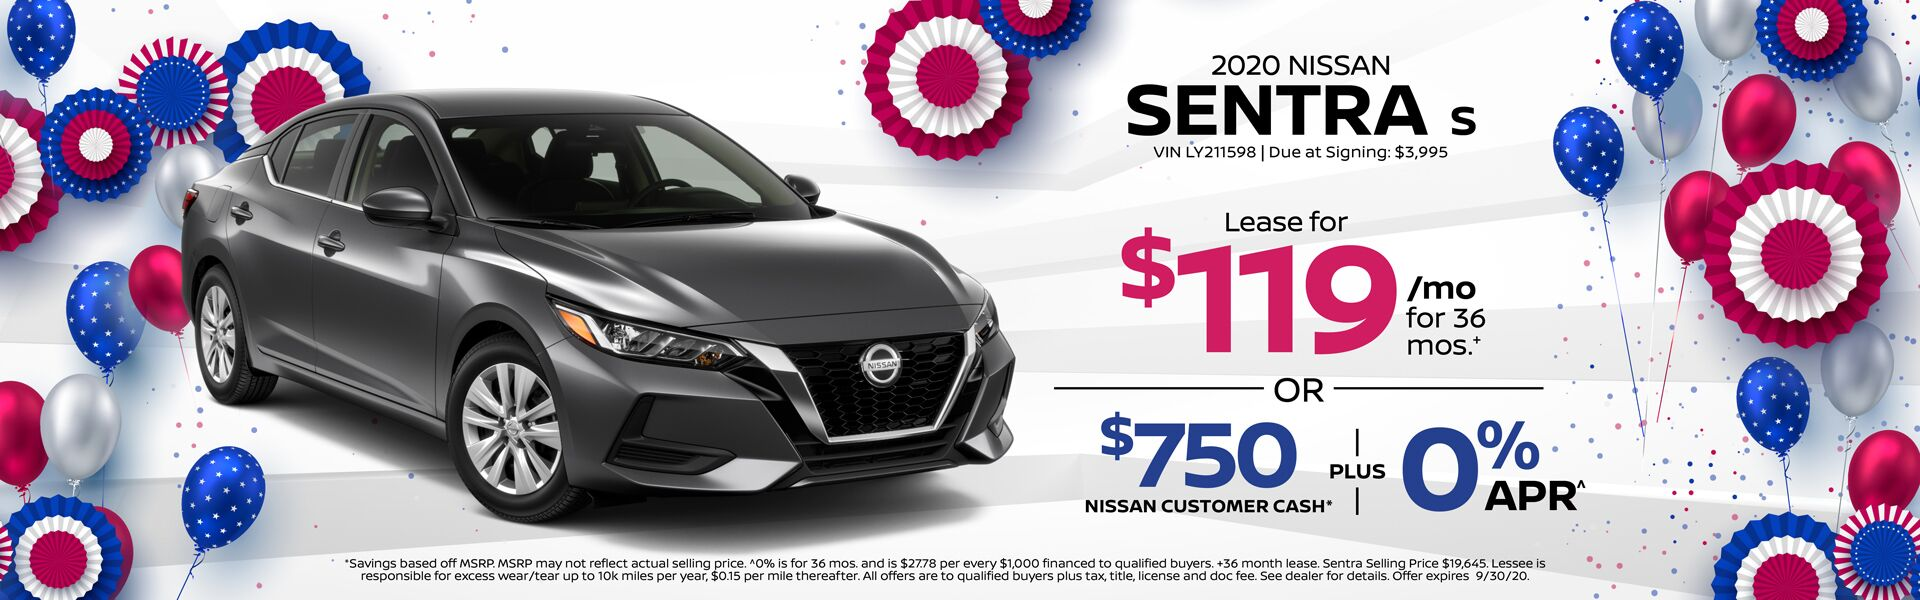 2020 Sentra Lease for $119 mo.